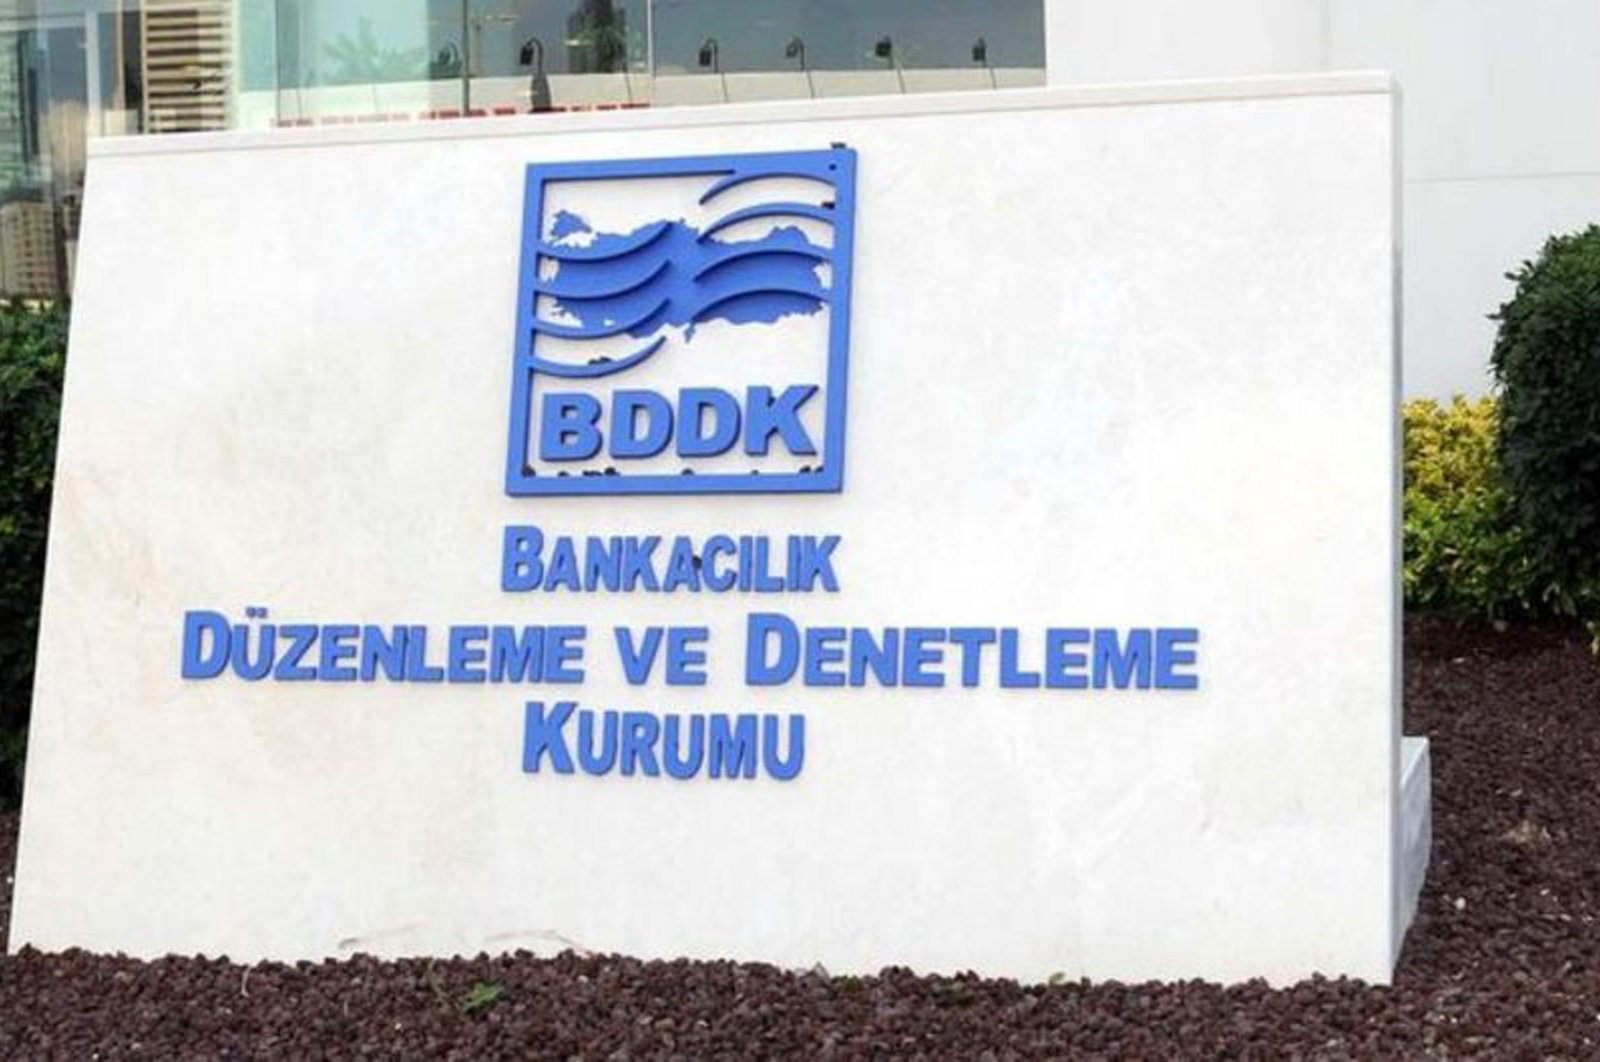 The Banking Regulation and Supervision Agency (BDDK) logo in front of its headquarters in Istanbul, Turkey. (File Photo)